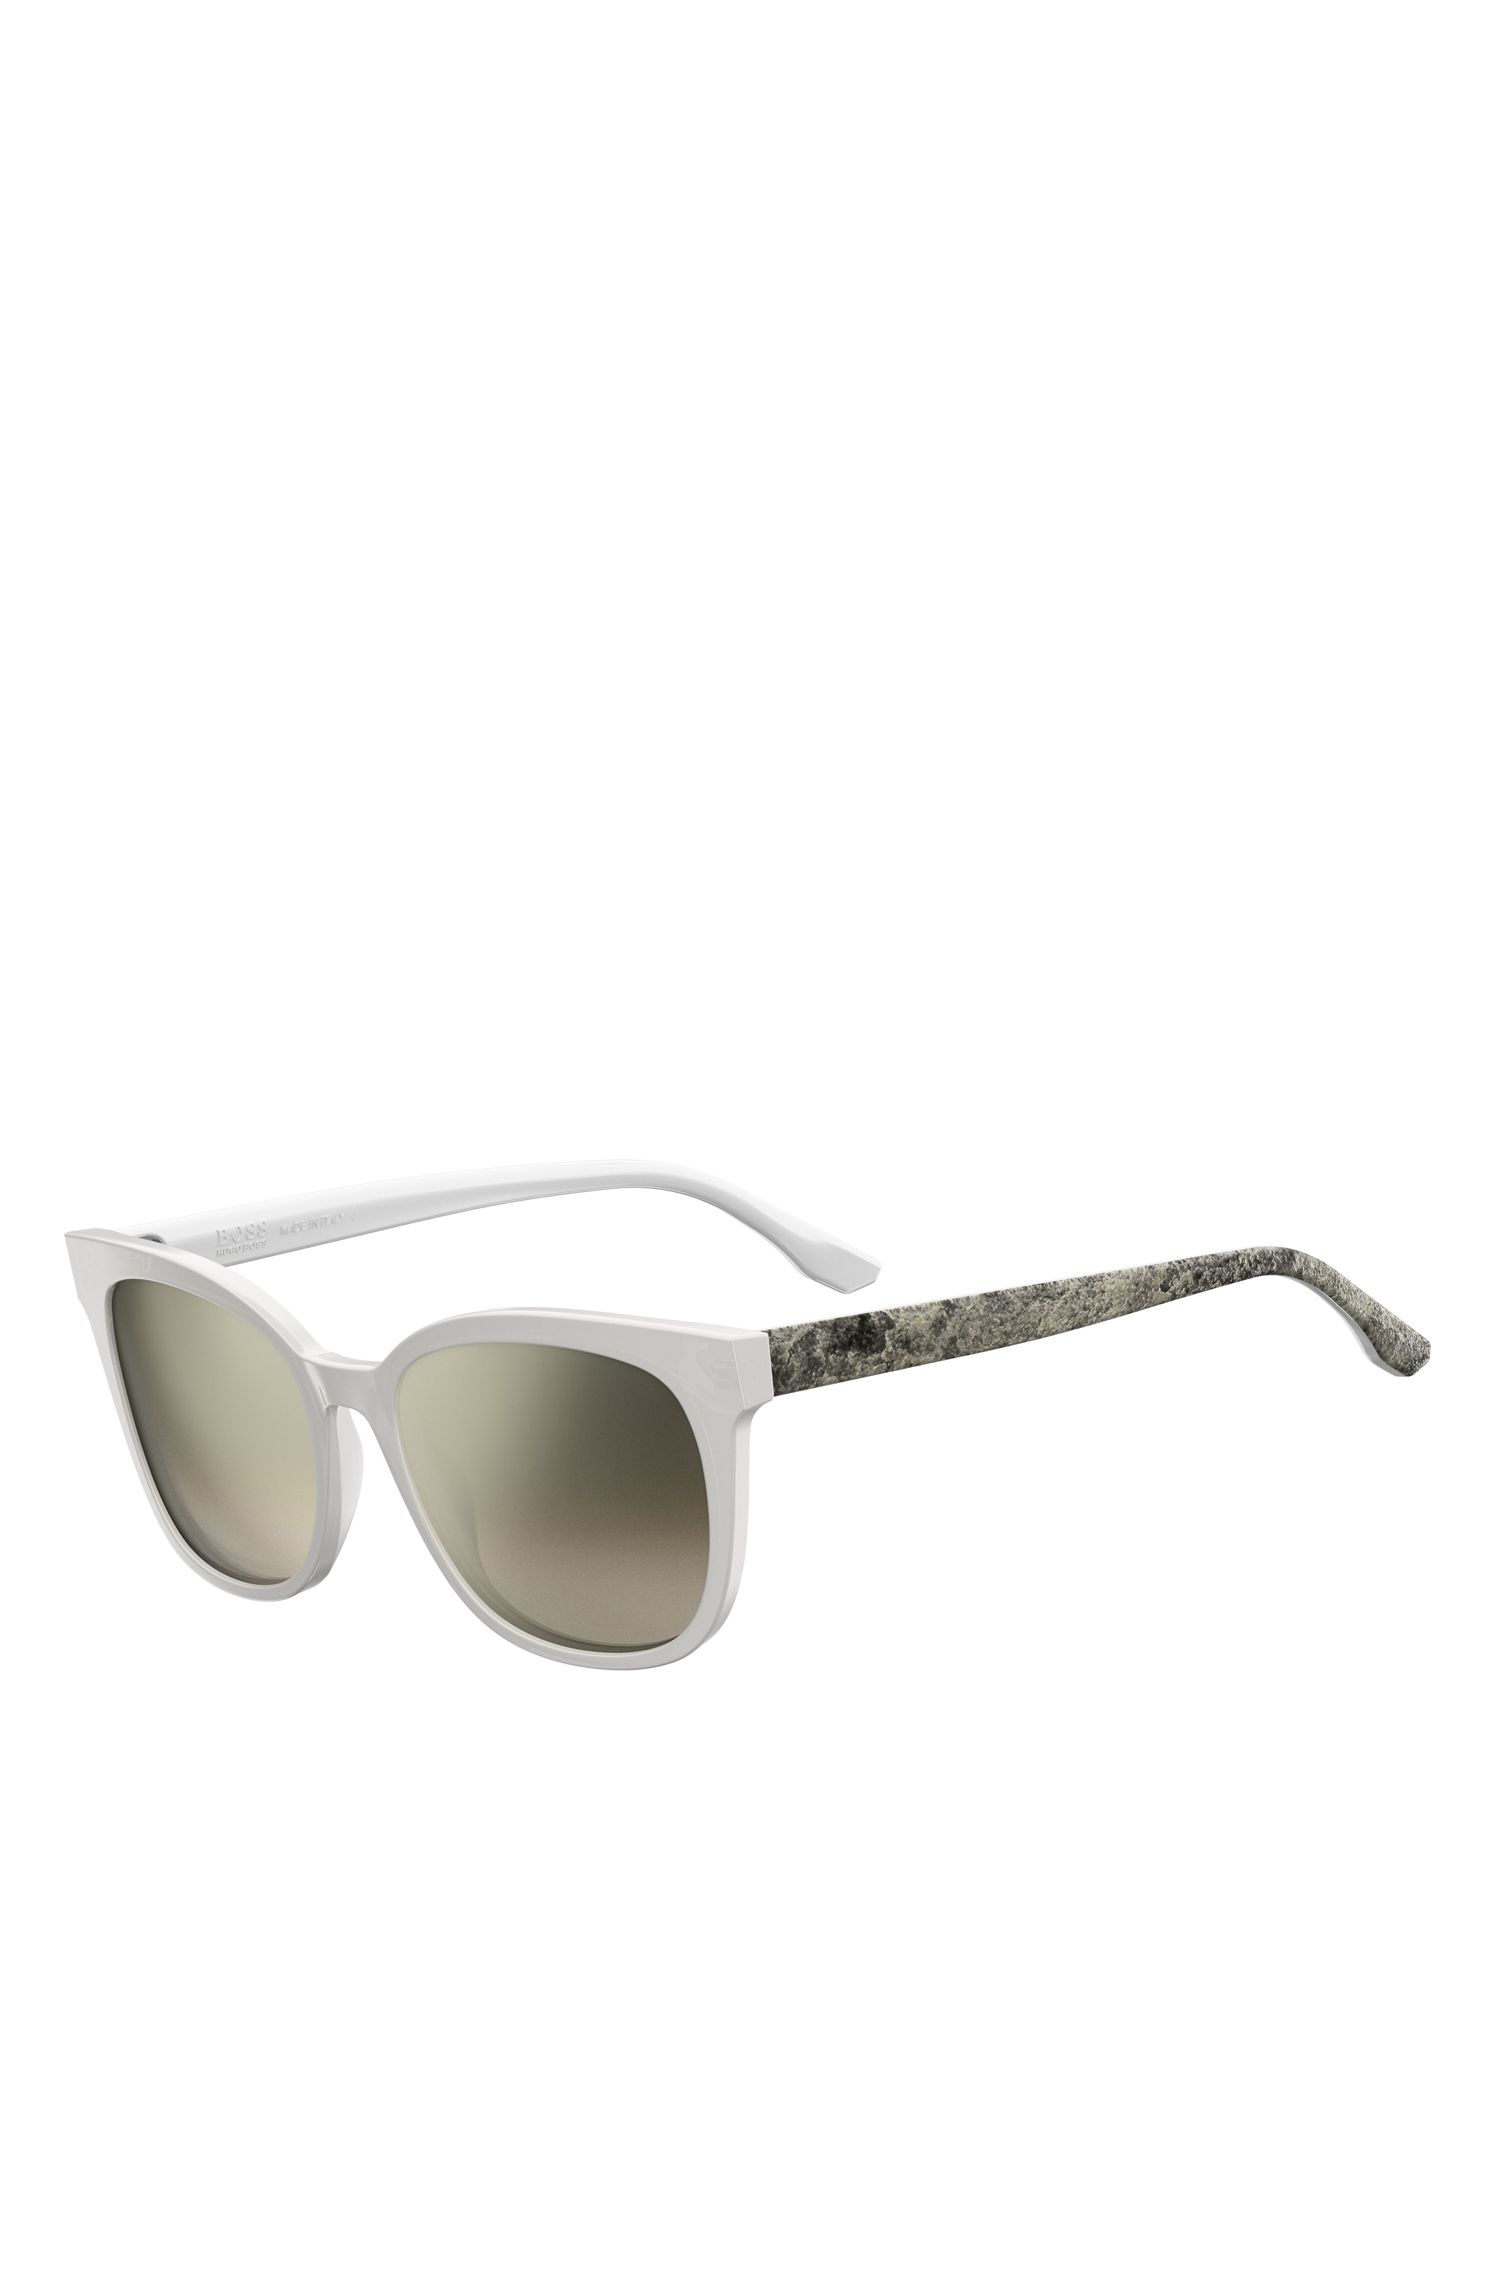 White Acetate Round Sunglasses | BOSS 0893